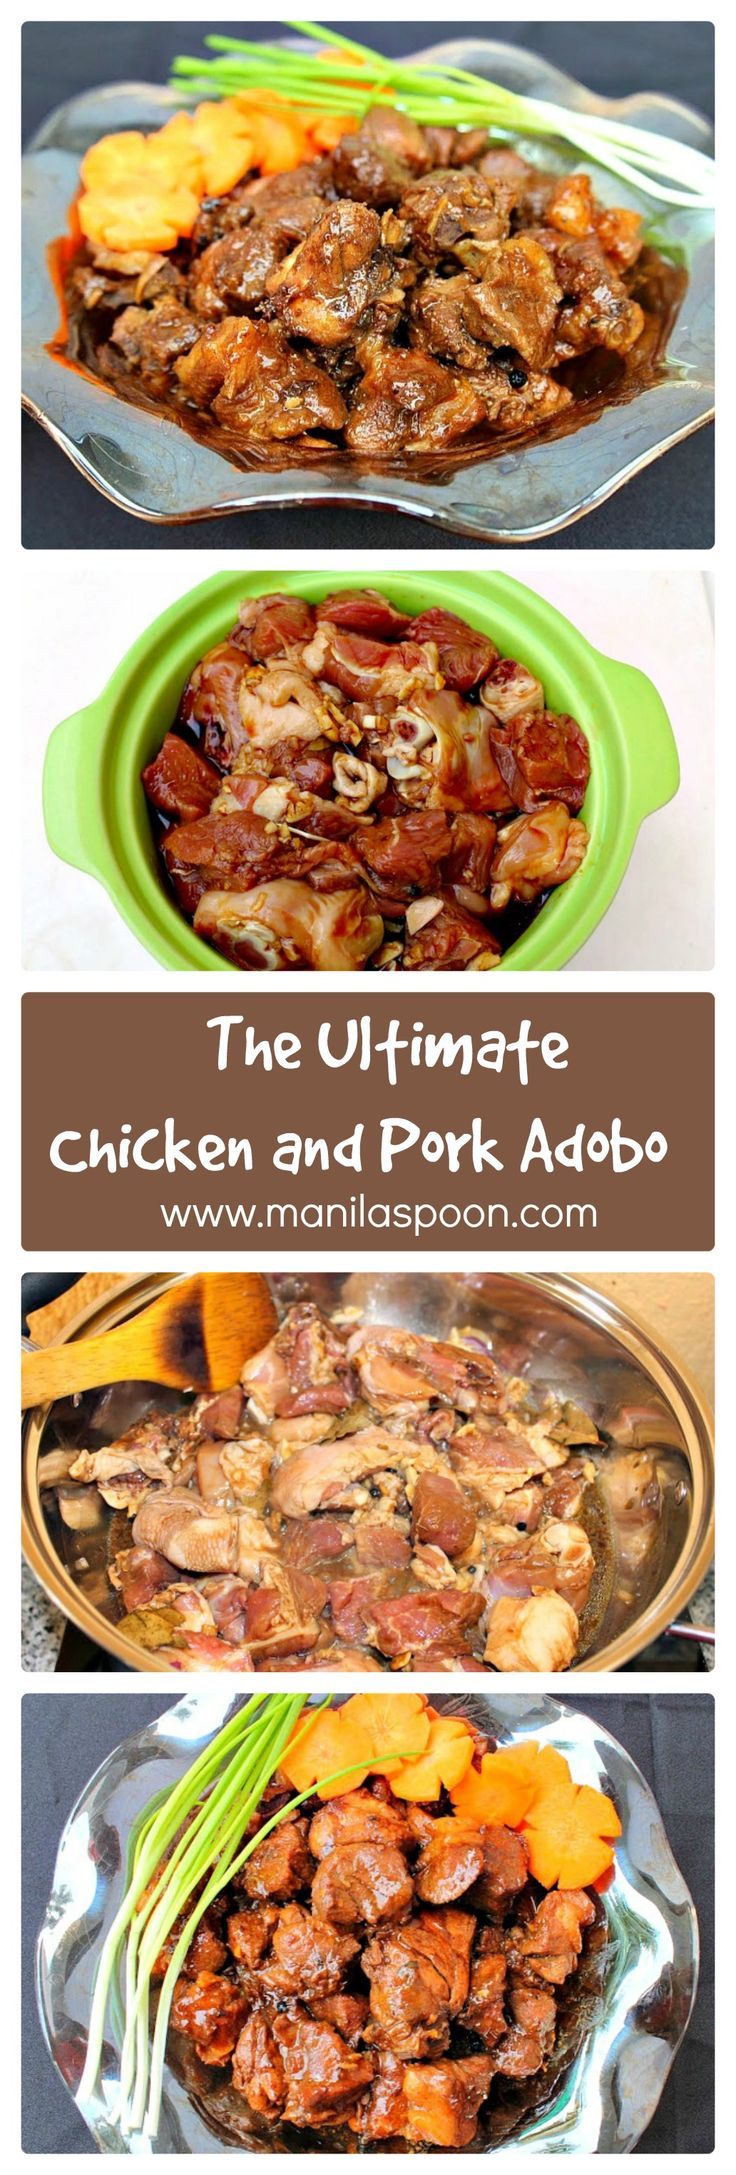 This is my family's favorite version of this classic Filipino dish! So easy to make and so flavorful. This will soon be your favorite version, too! #adobo #filipino